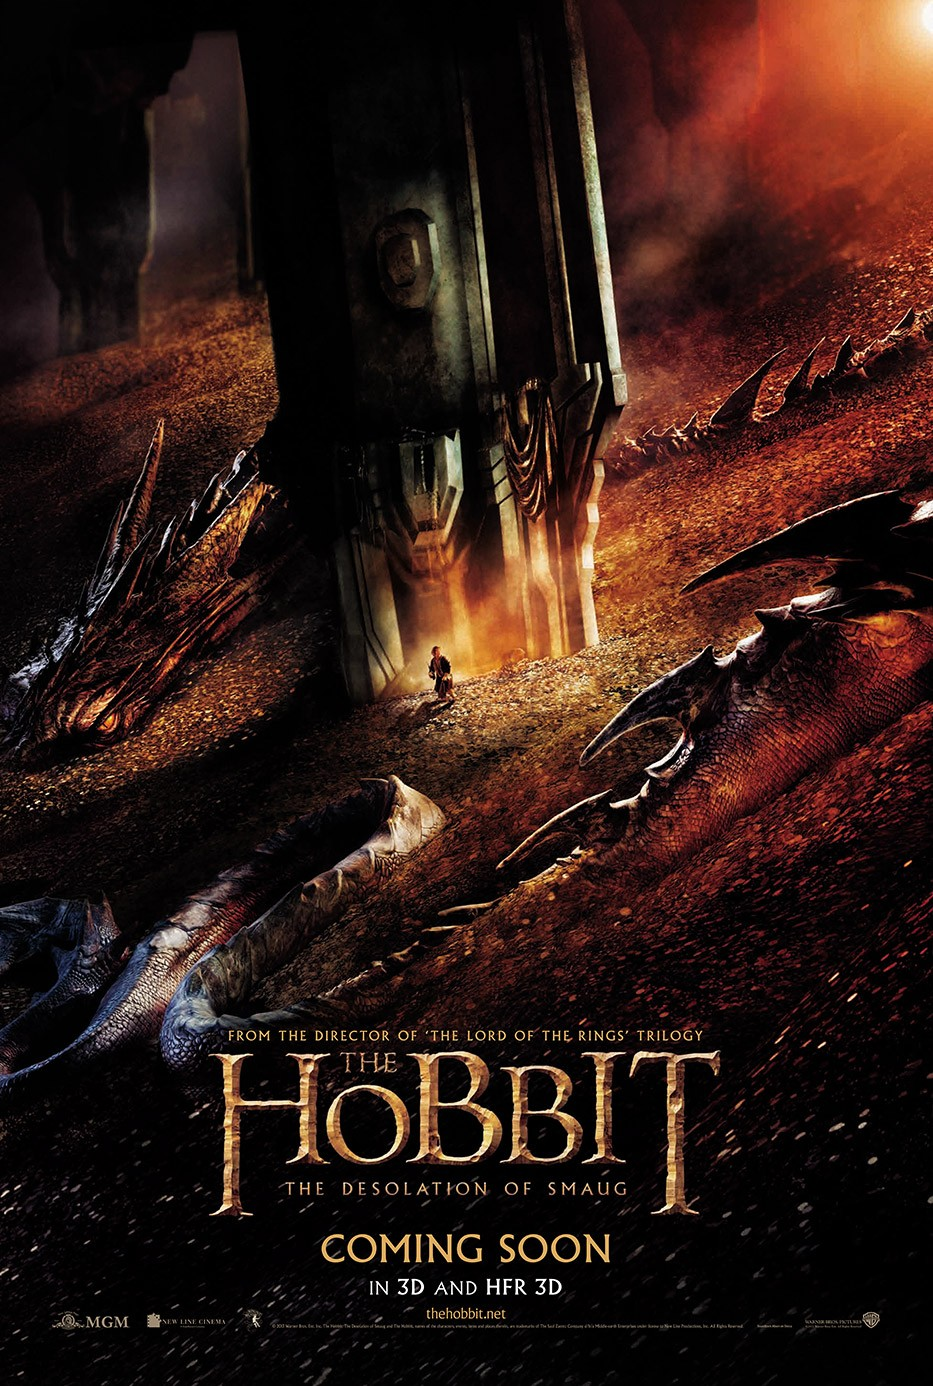 The Hobbit The Desolation of Smaug-Official Poster Banner PROMO POSTER XLG-16DEZEMBRO2013-01